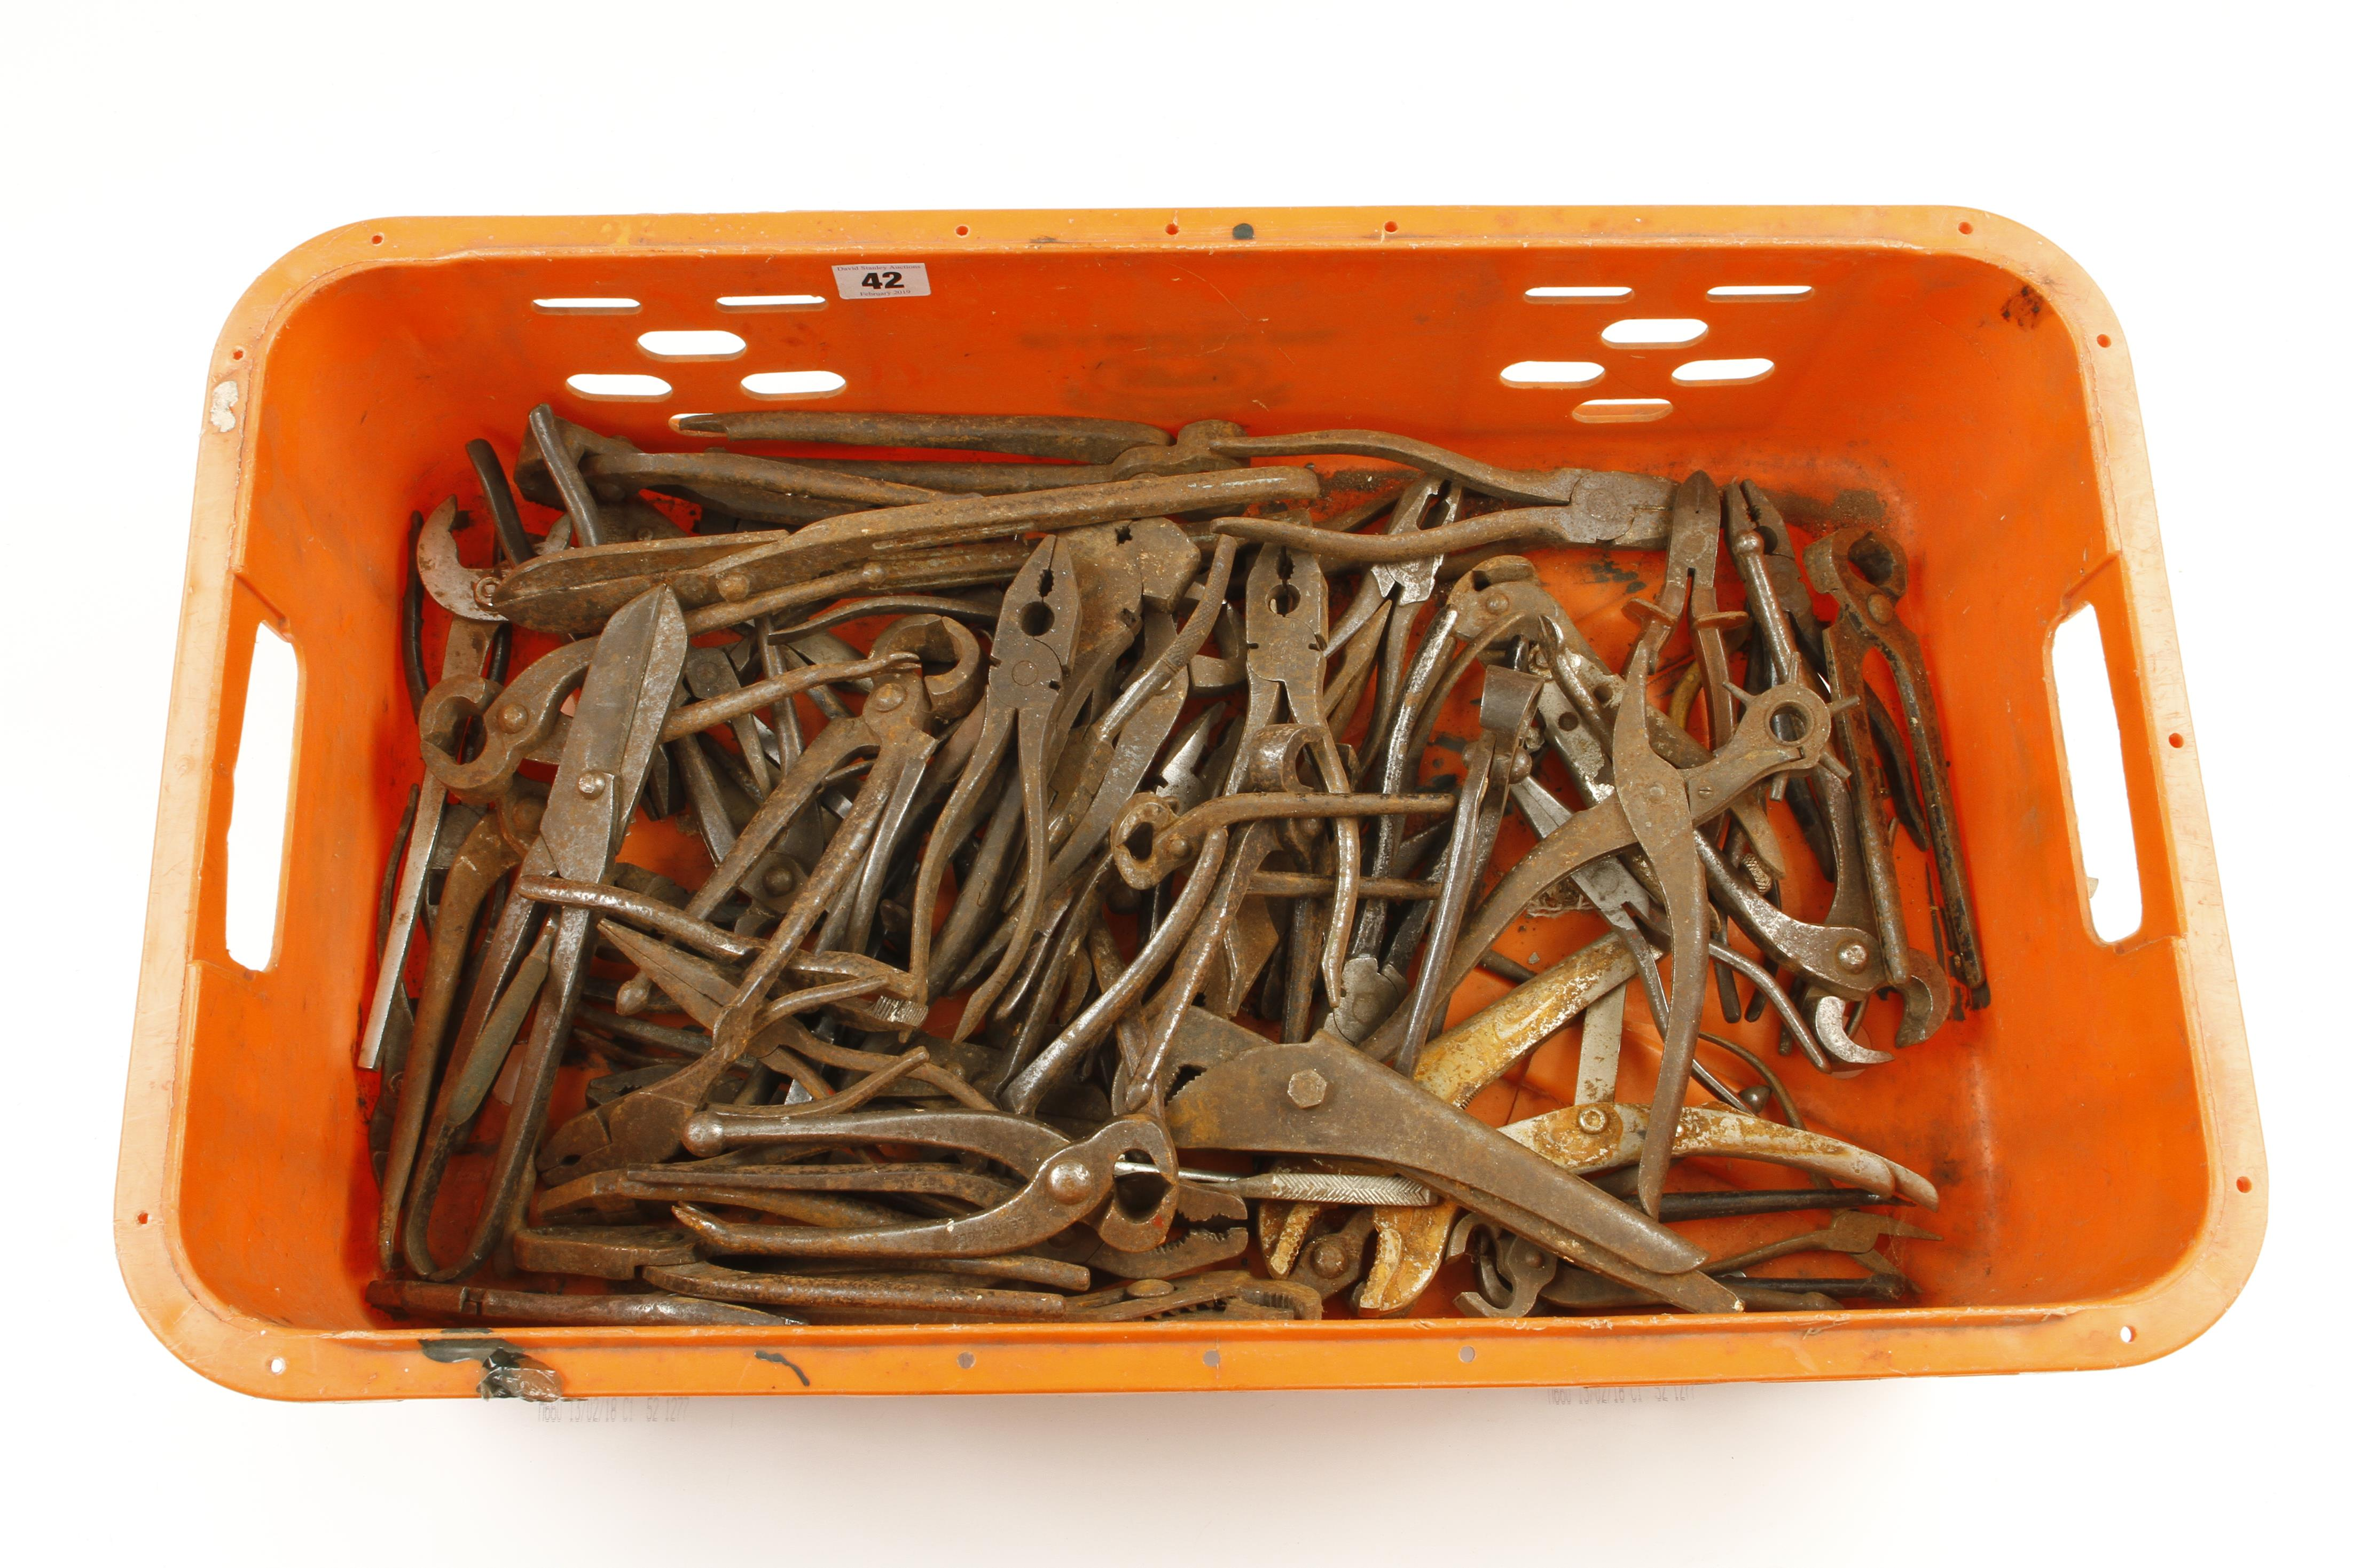 Lot 42 - Quantity of old snips and grips G-